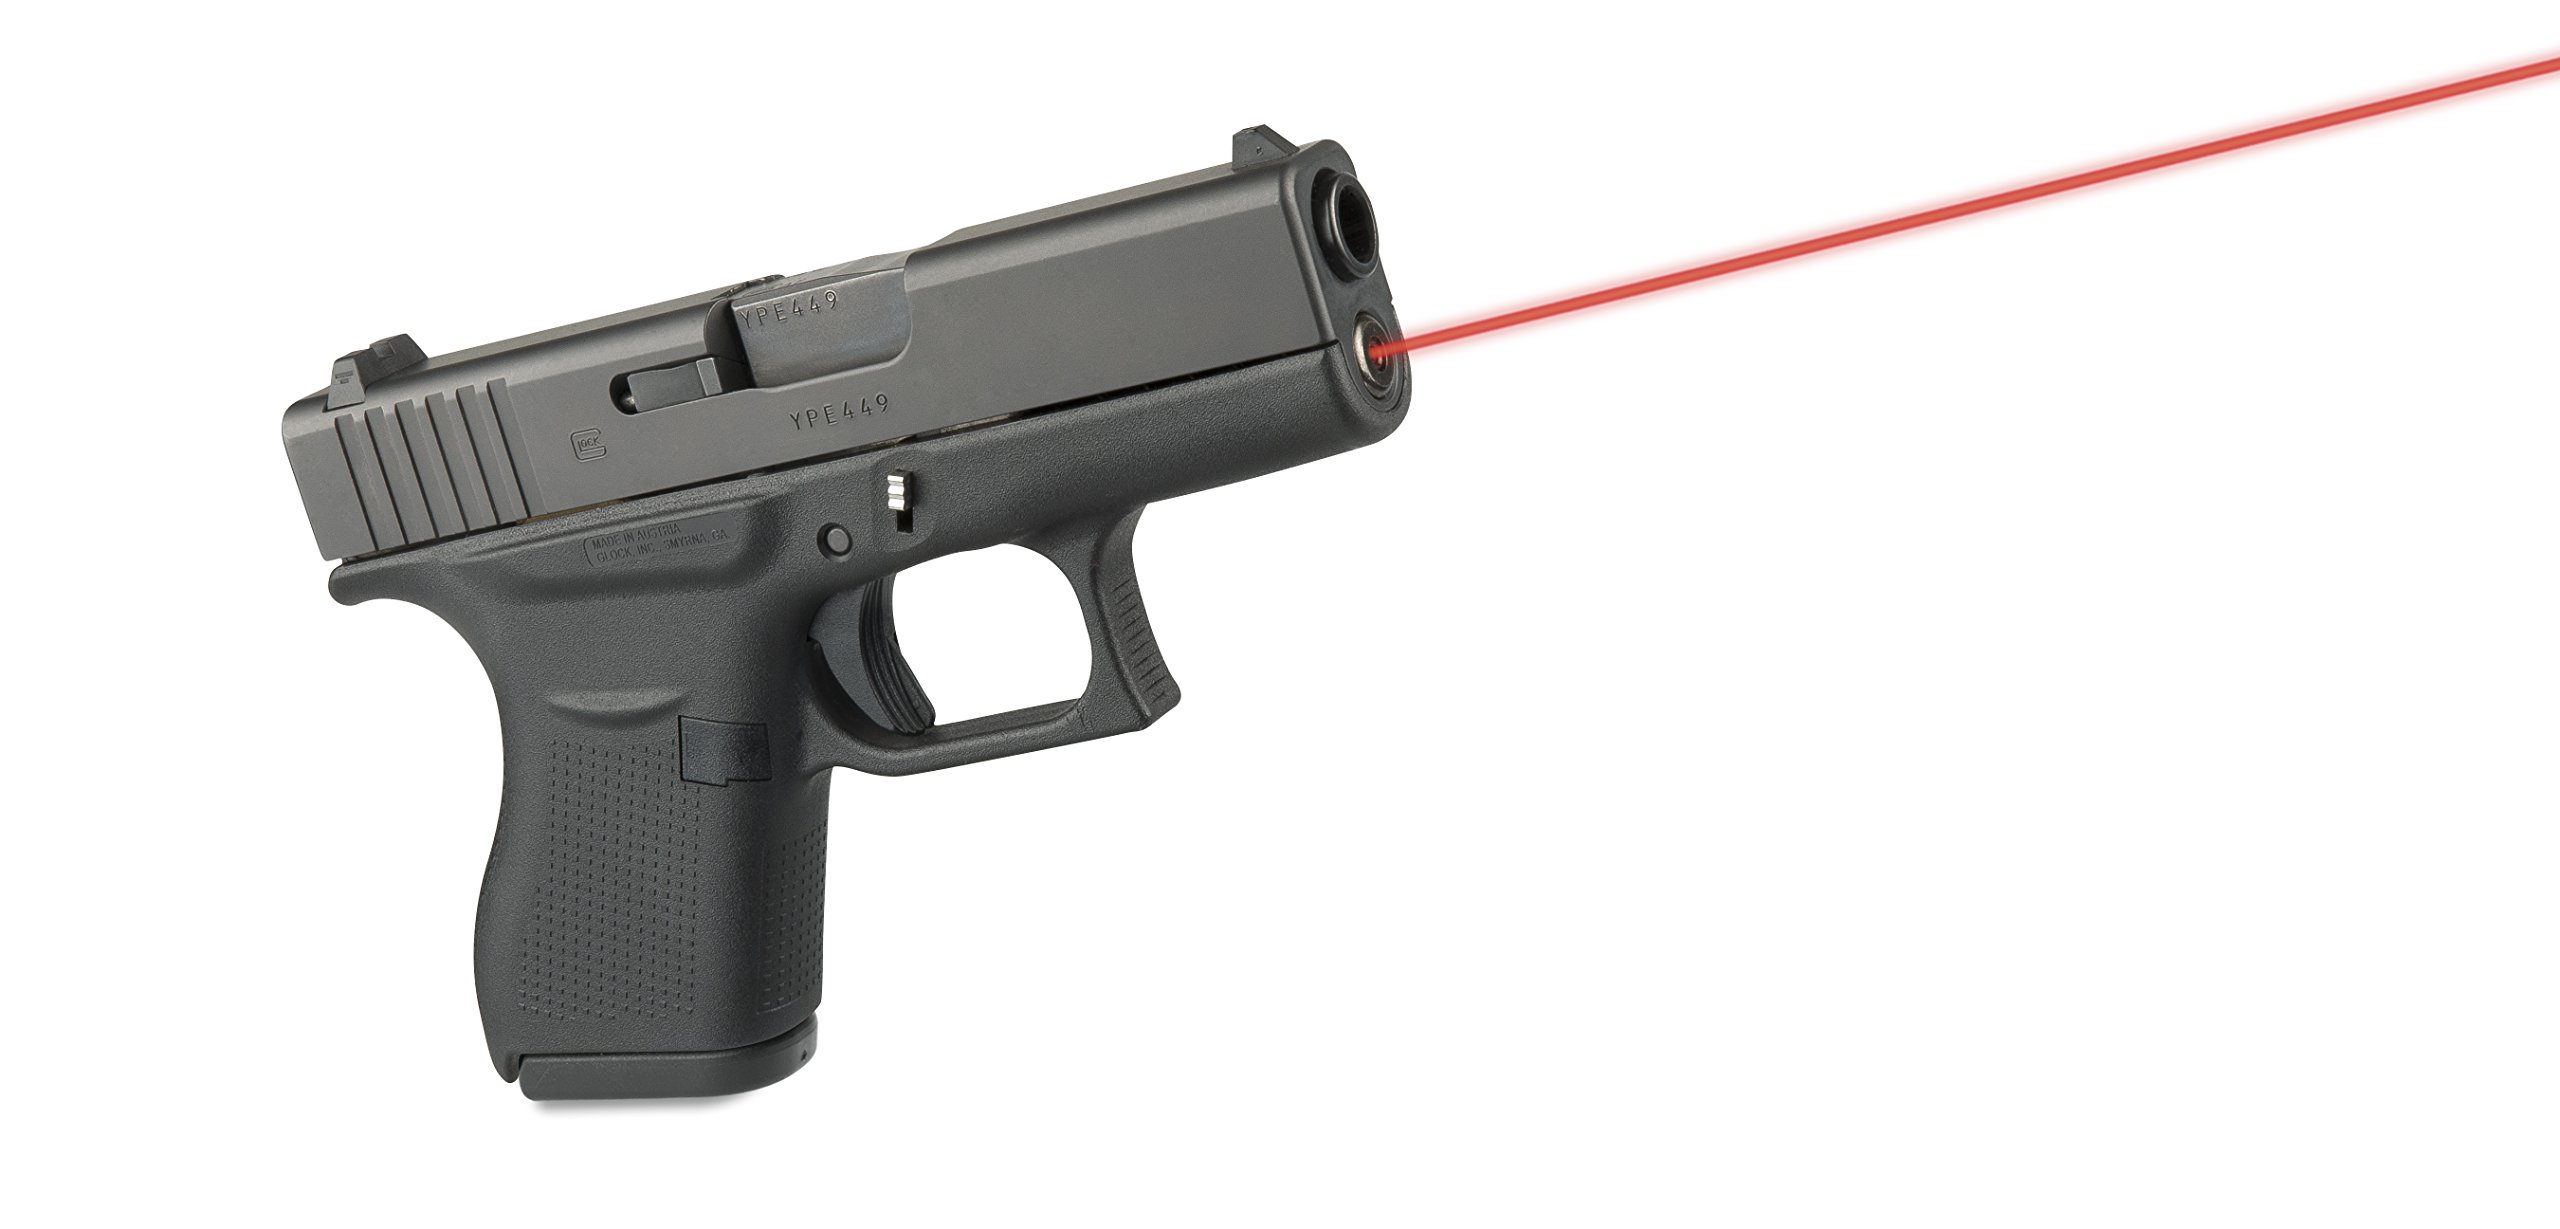 Guide Rod Laser (Red) For Glock 43 by LaserMax (Image #3)